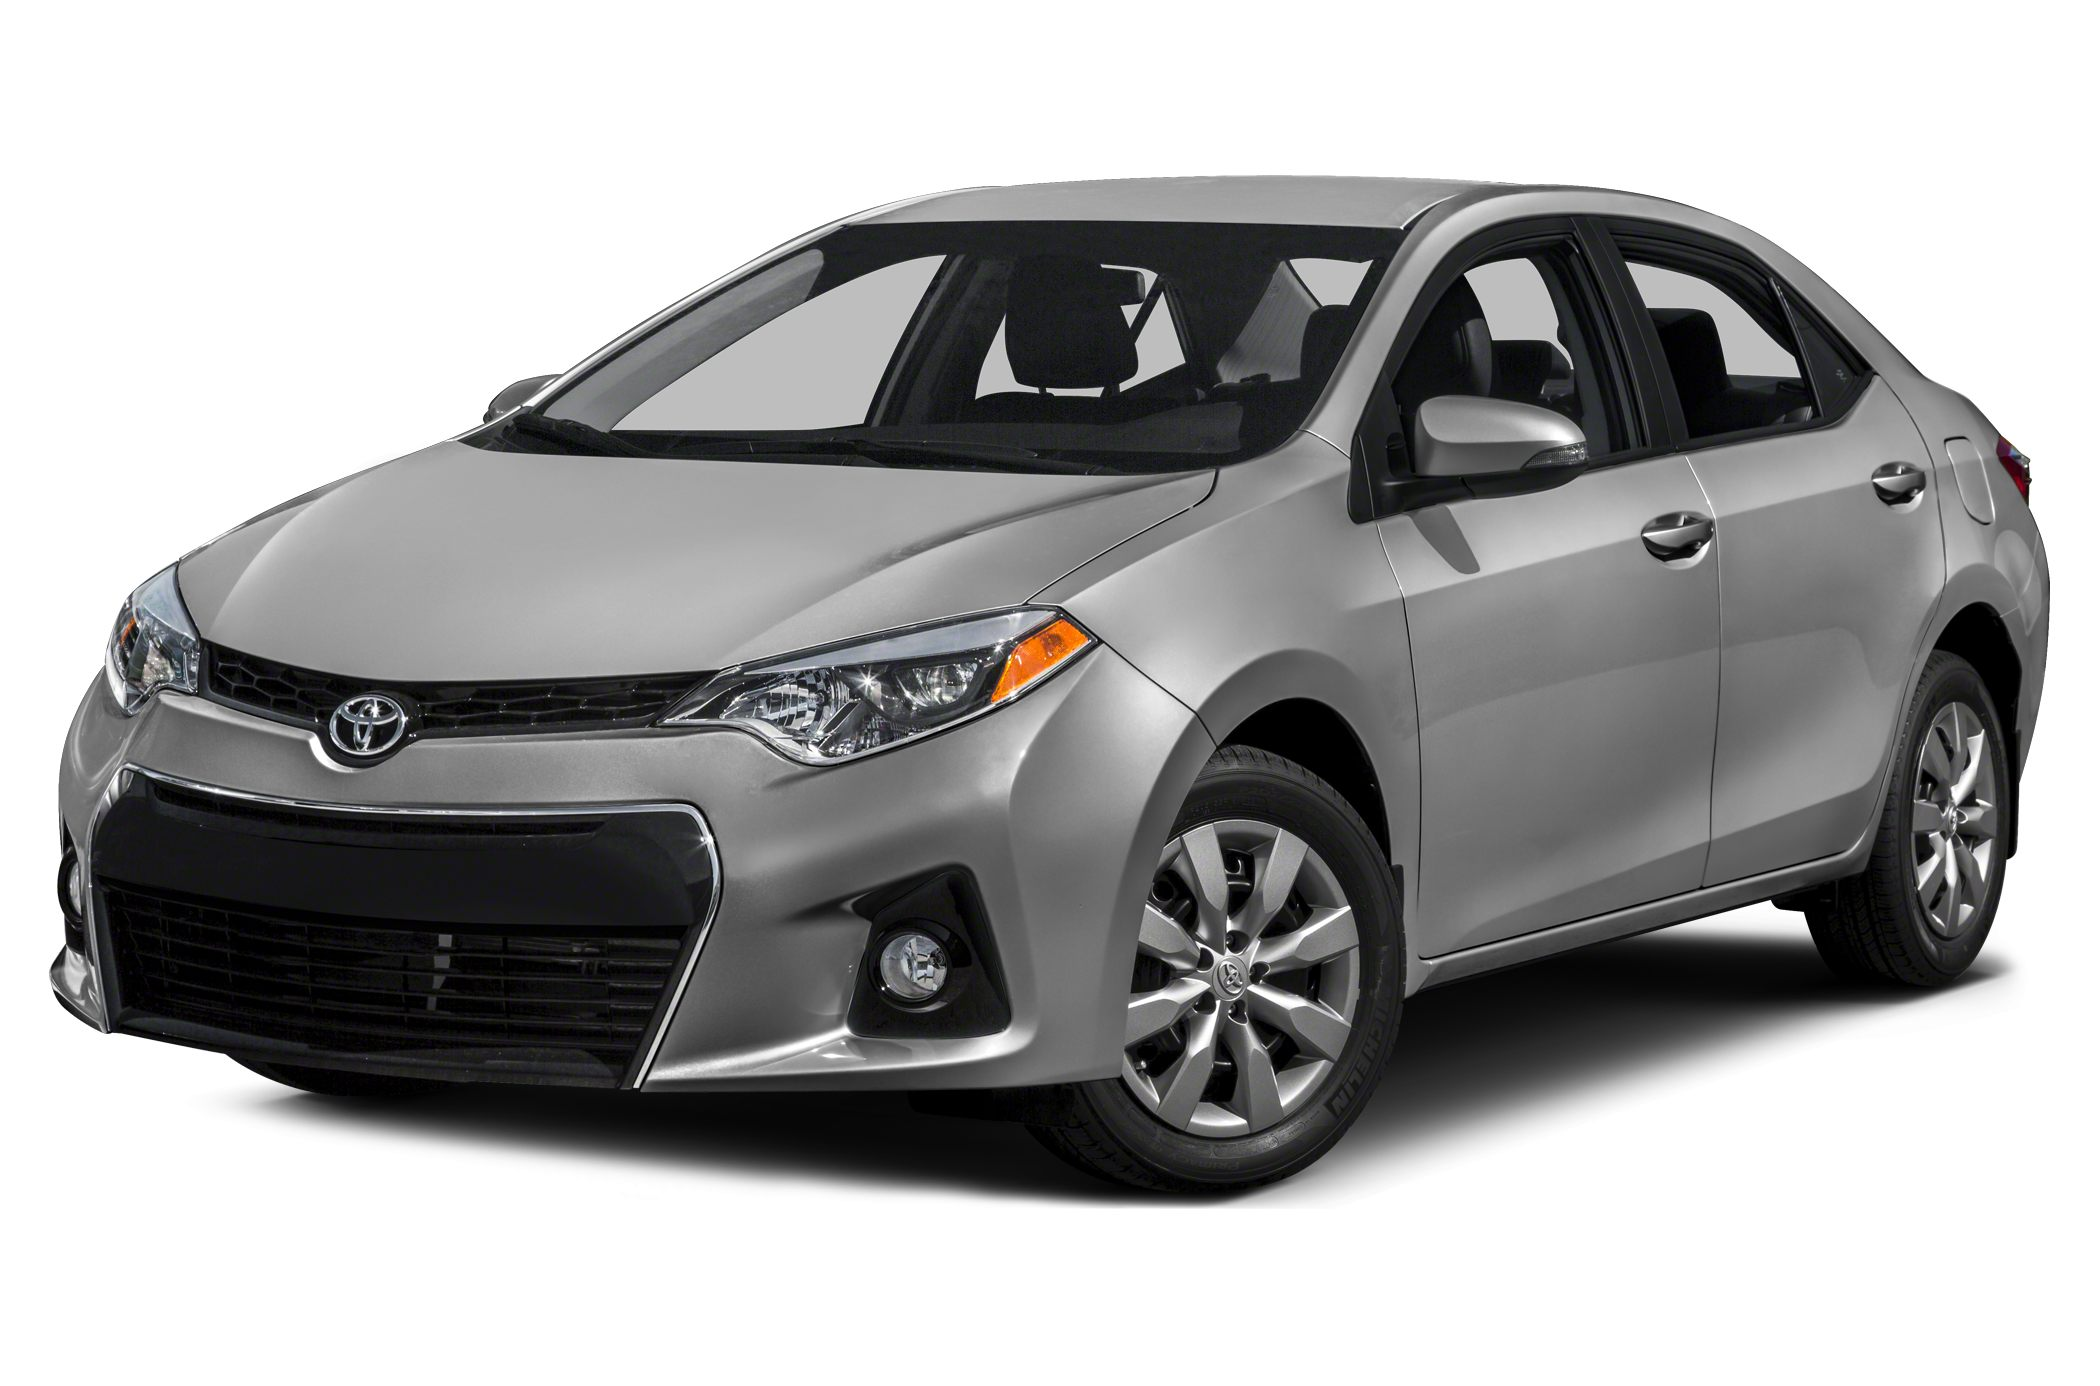 2015 Toyota Corolla S Plus Sedan for sale in Hollywood for $23,627 with 0 miles.